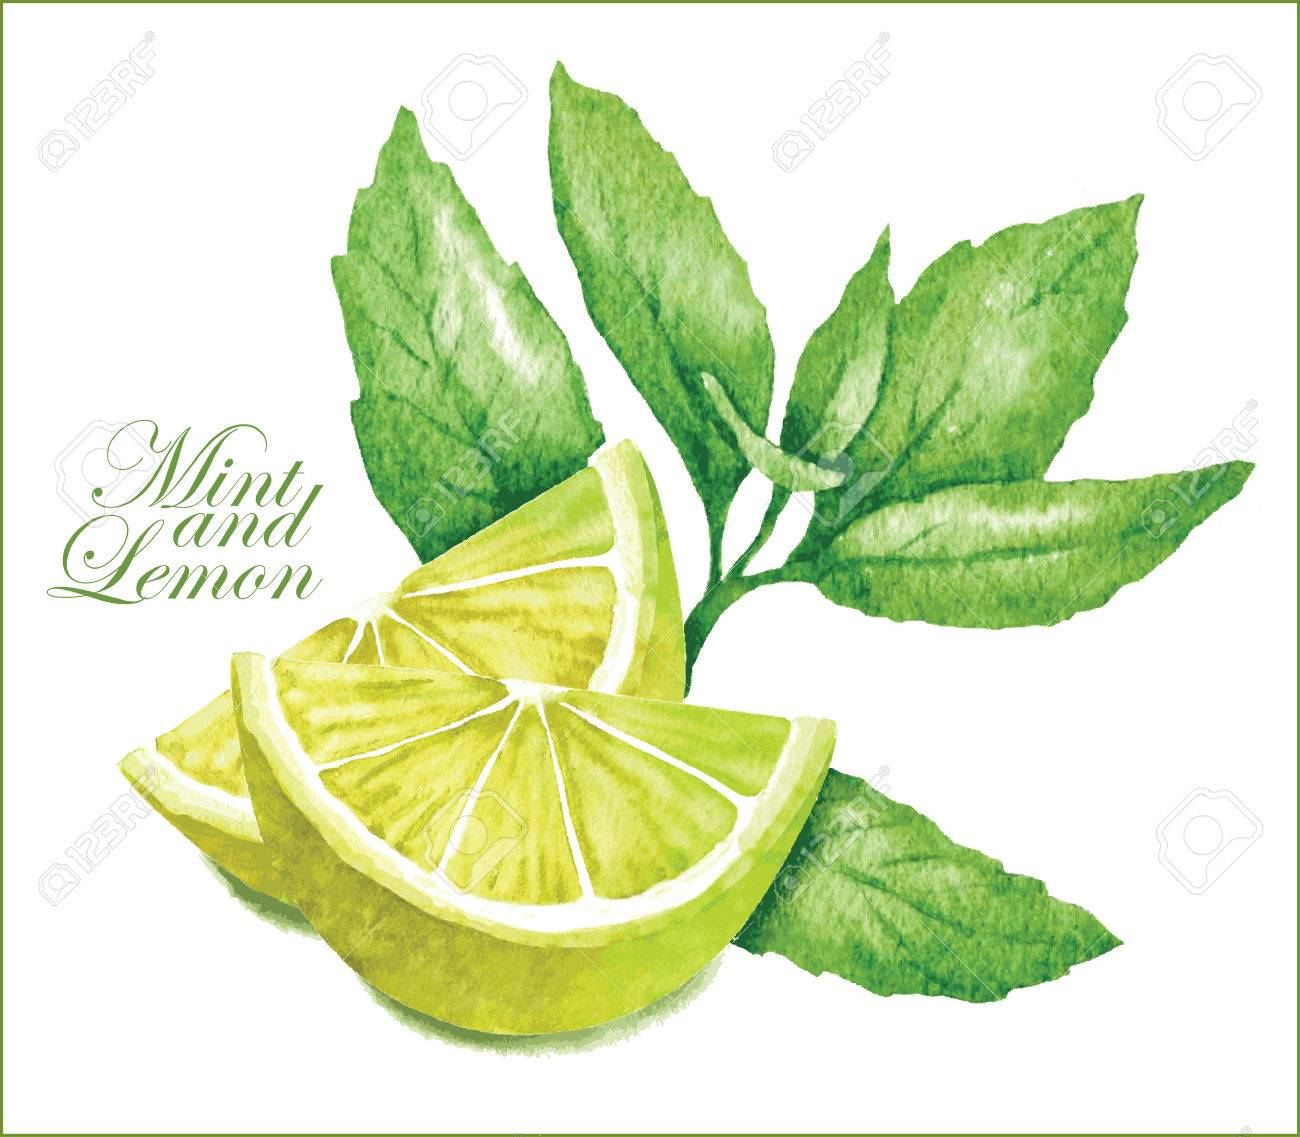 Hand made vector sketch of lemon with leaves of mint. - 45324039